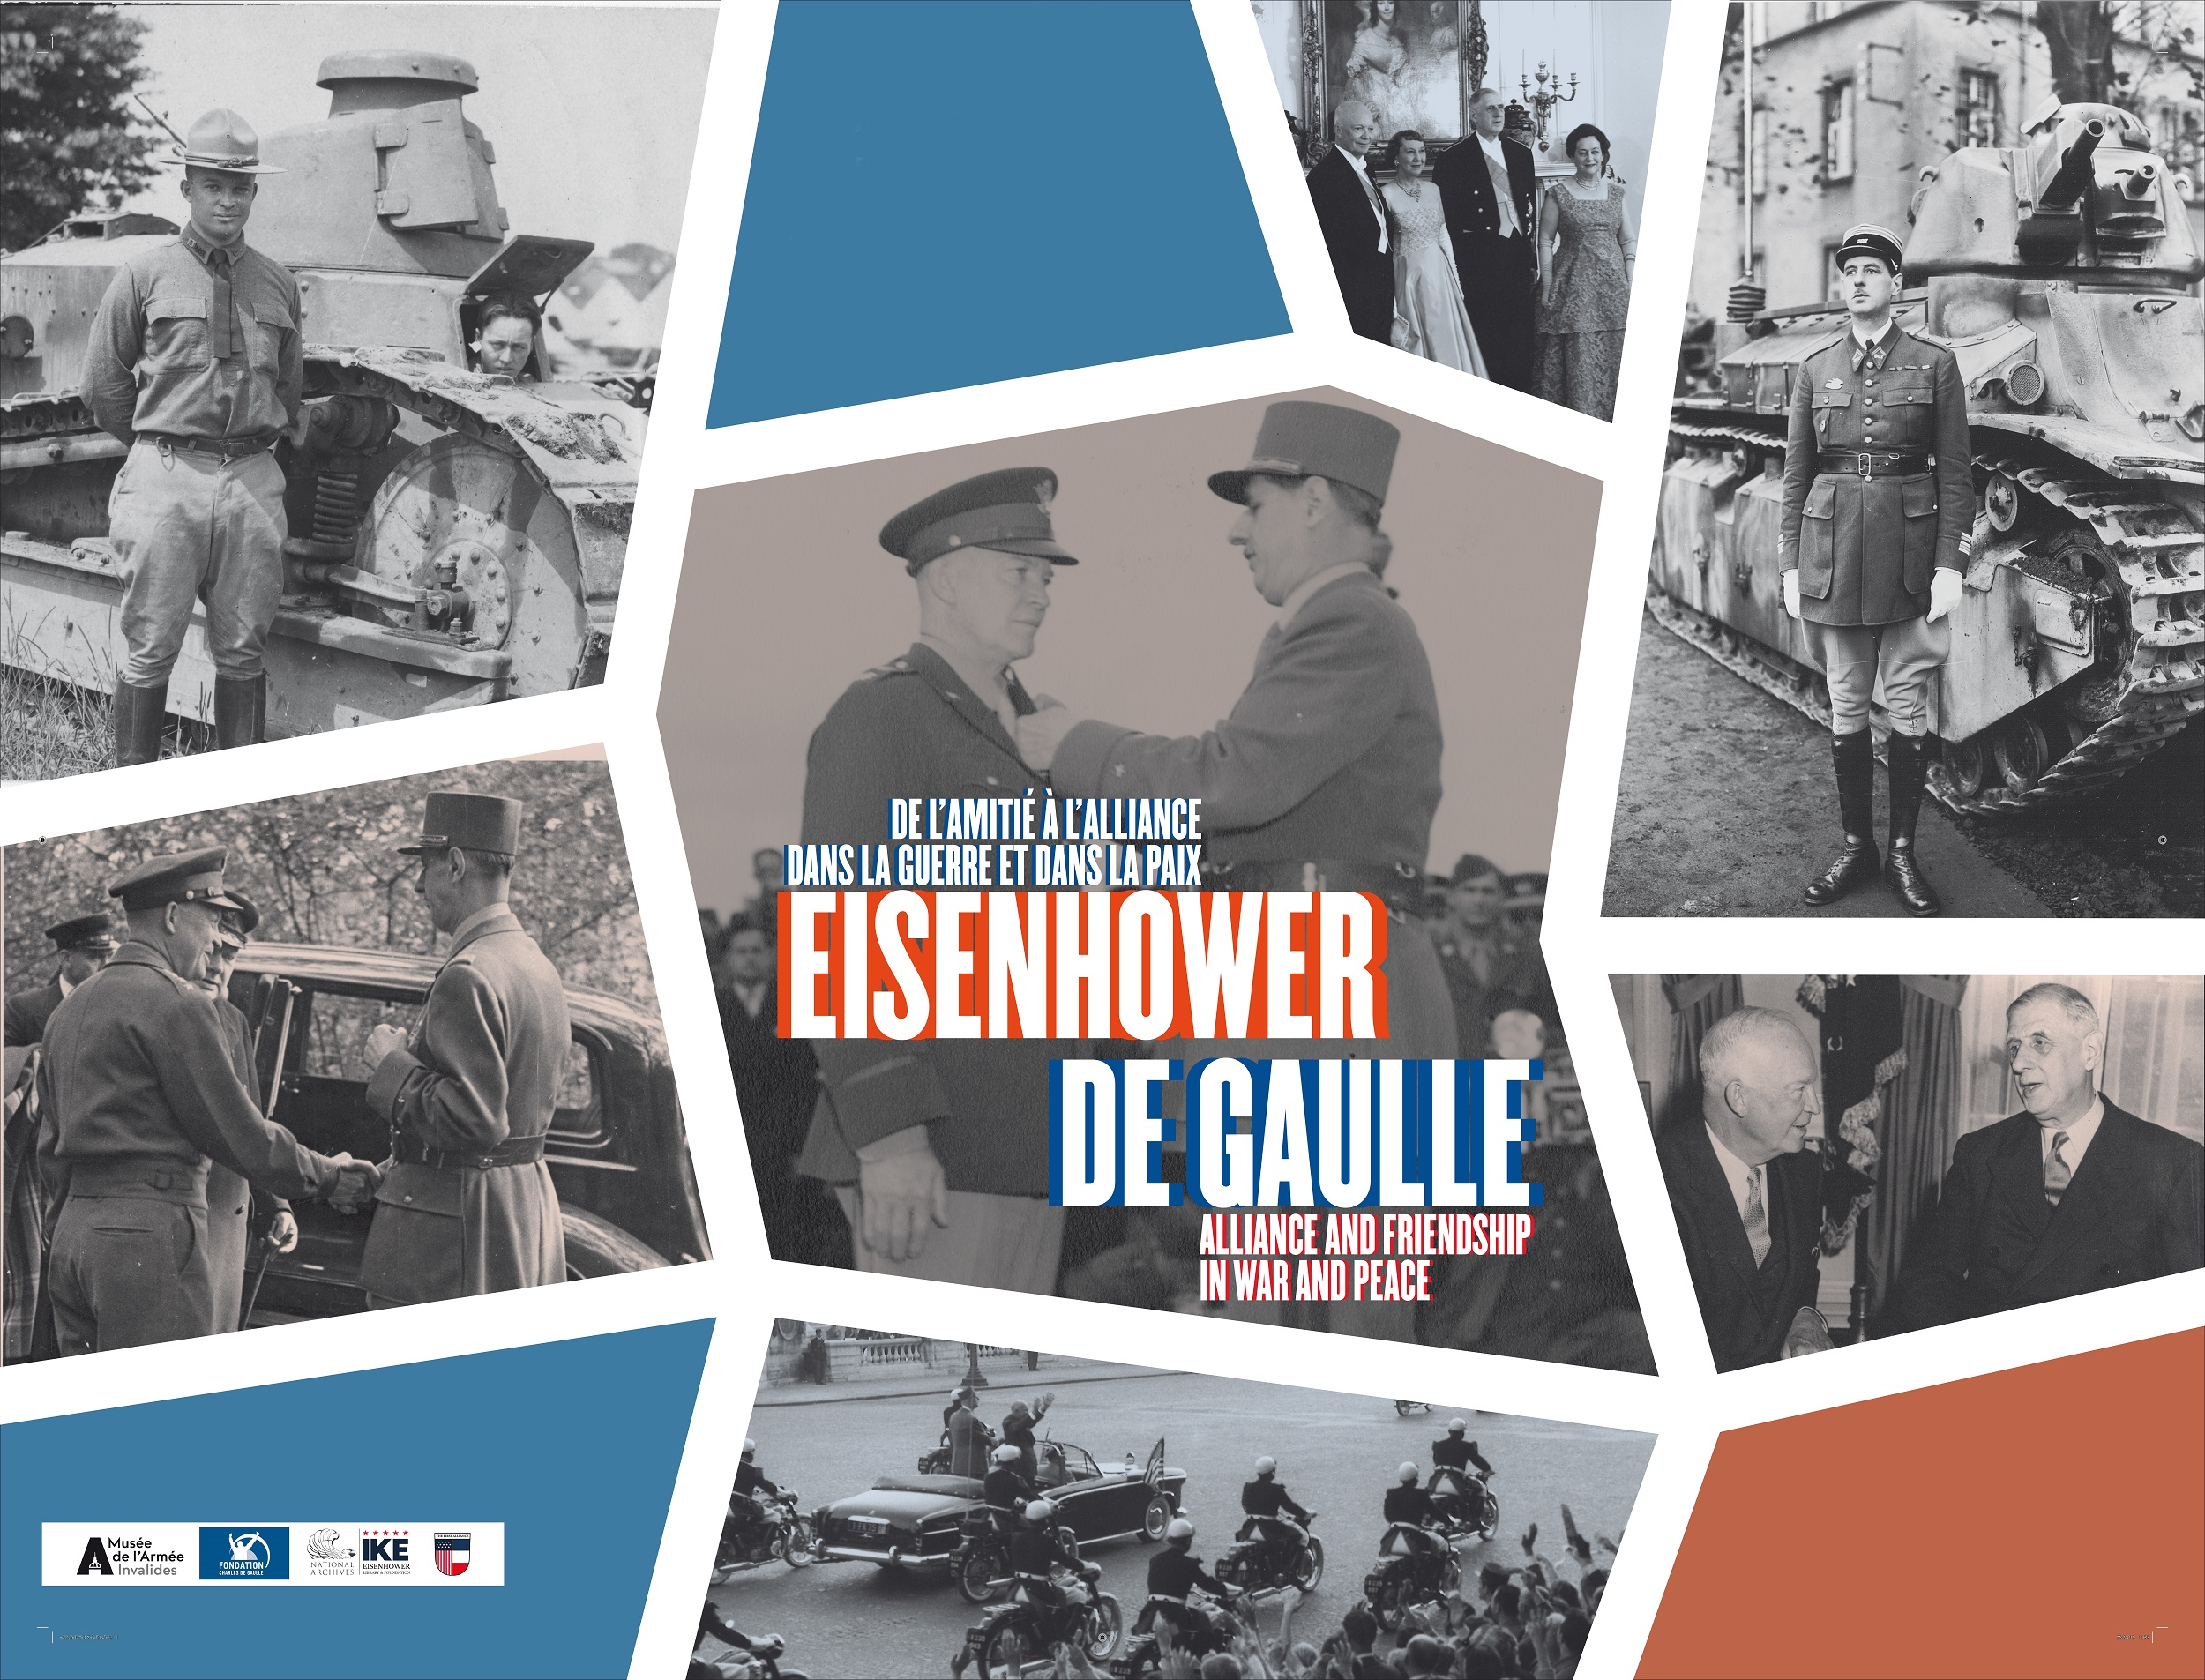 Eisenhower and de Gaulle